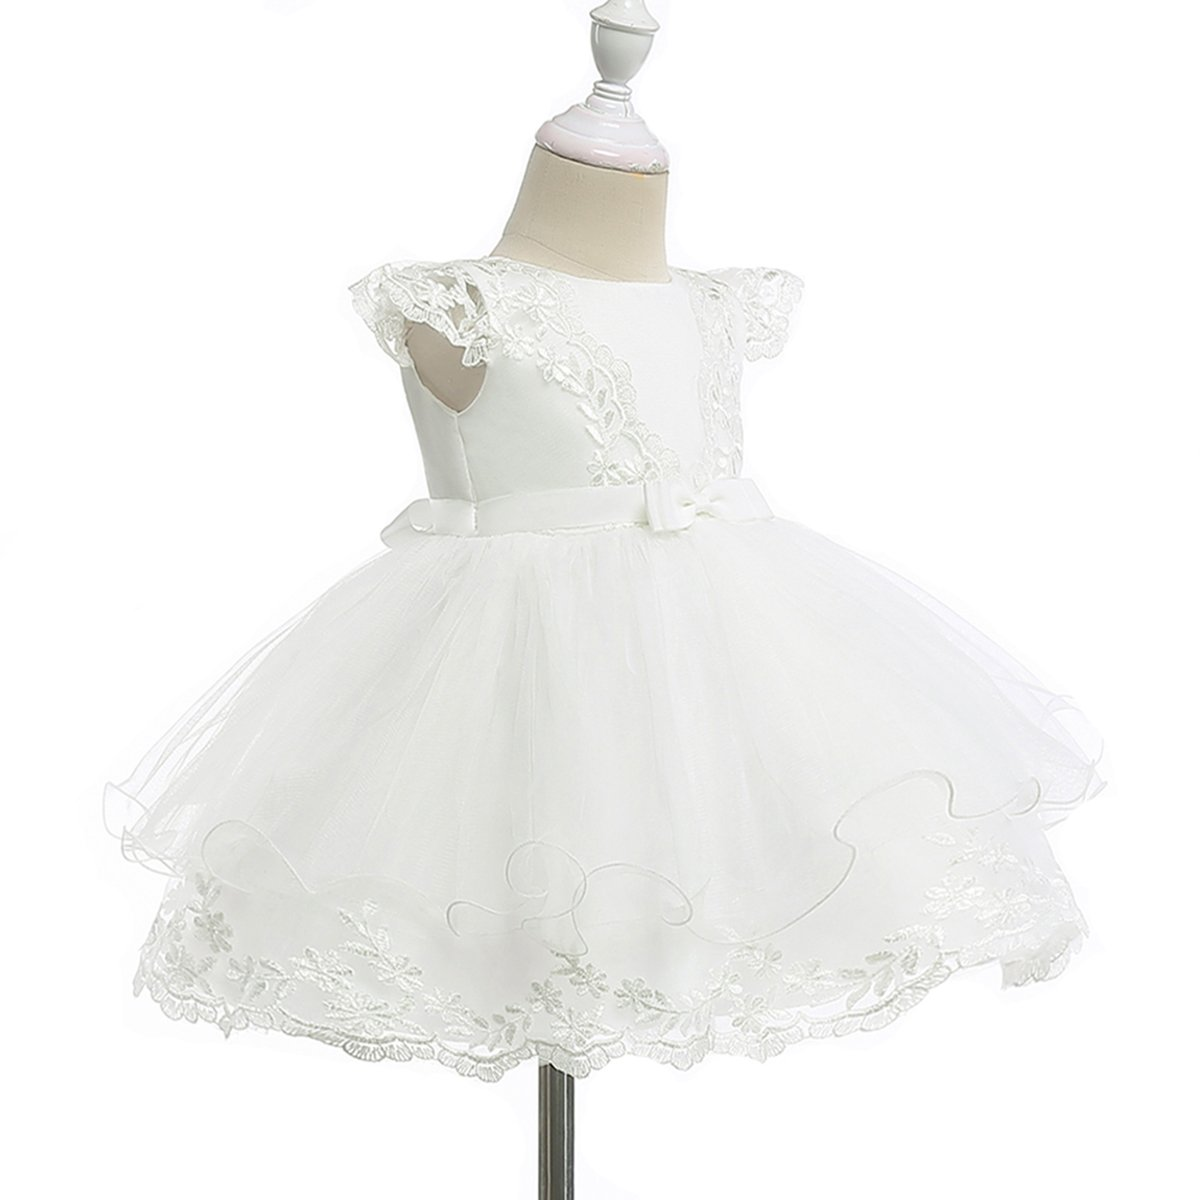 Moon Kitty Baby Girls Embroidery Flower Dress Lace Christening Baptism Gown for Baby Girl